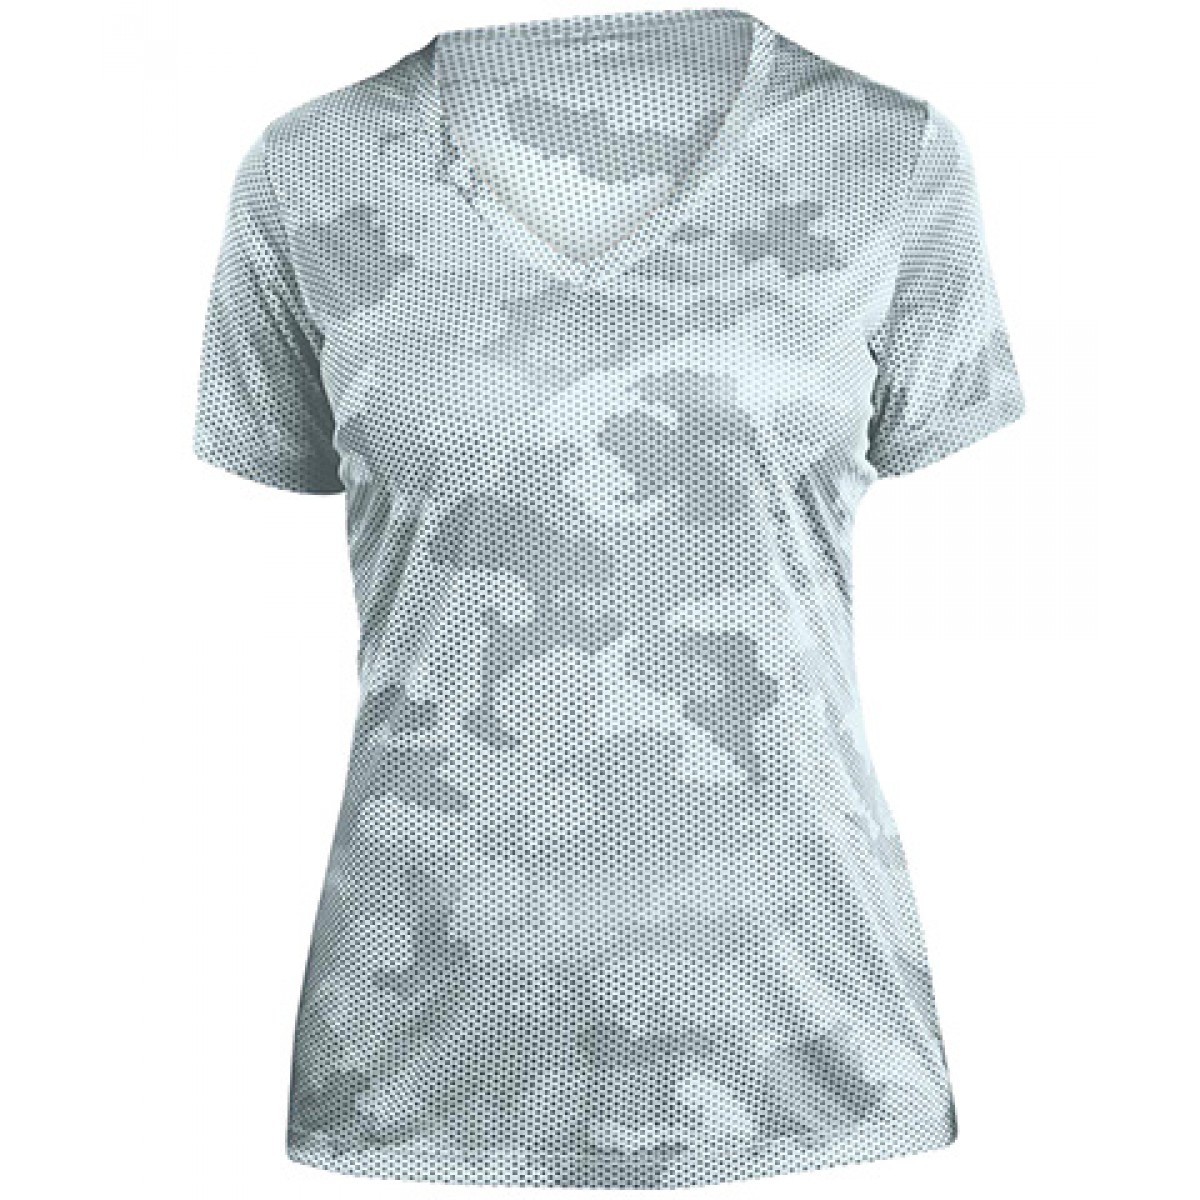 Ladies CamoHex V-Neck Tee-White-M